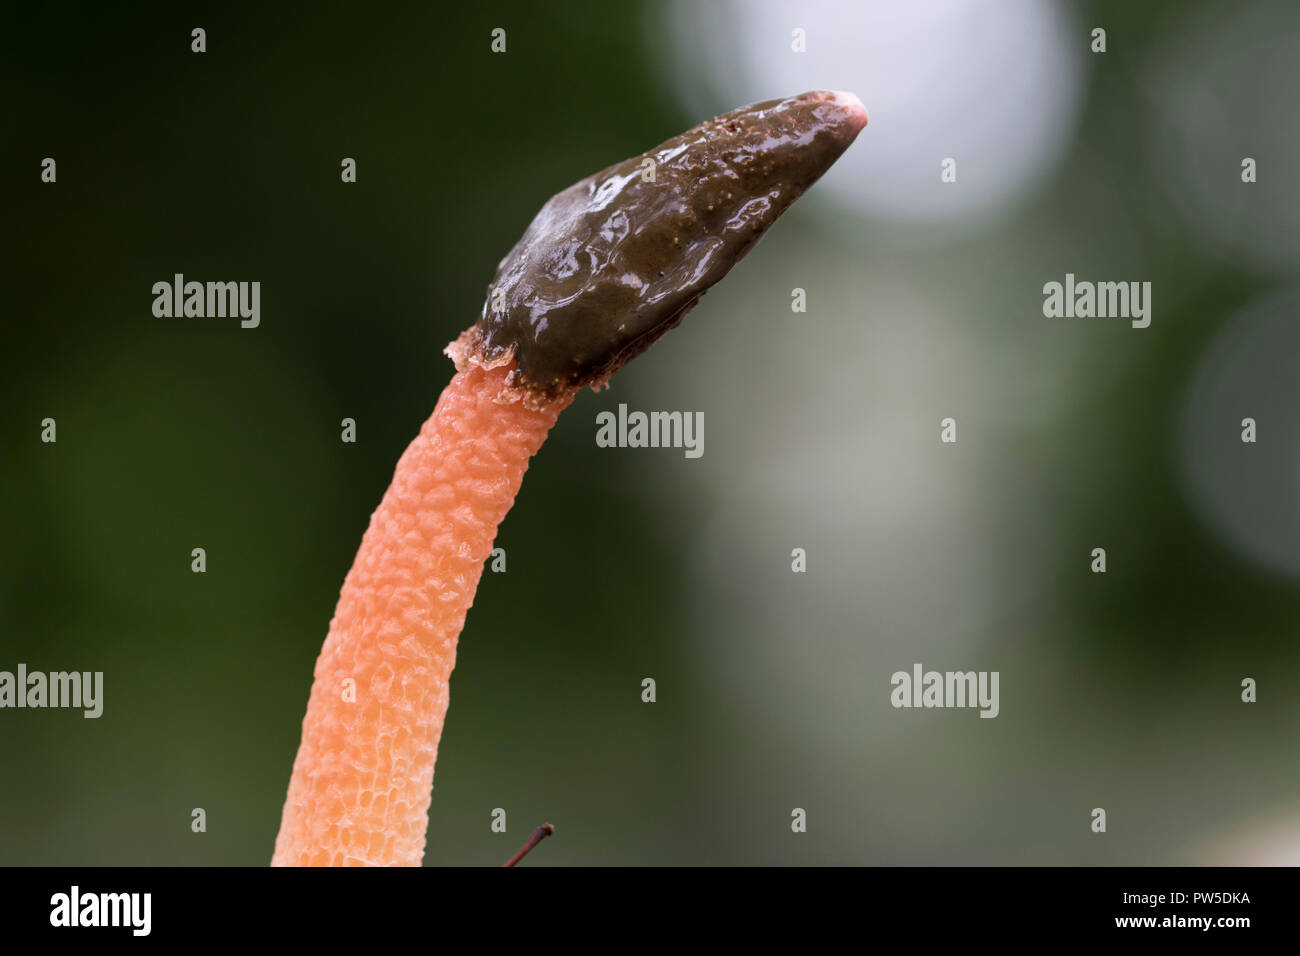 Stinkhorn mushroom close up. Foul-smelling Phallales mushroom sprouting from the ground. Macro view of mushrooms. - Stock Image